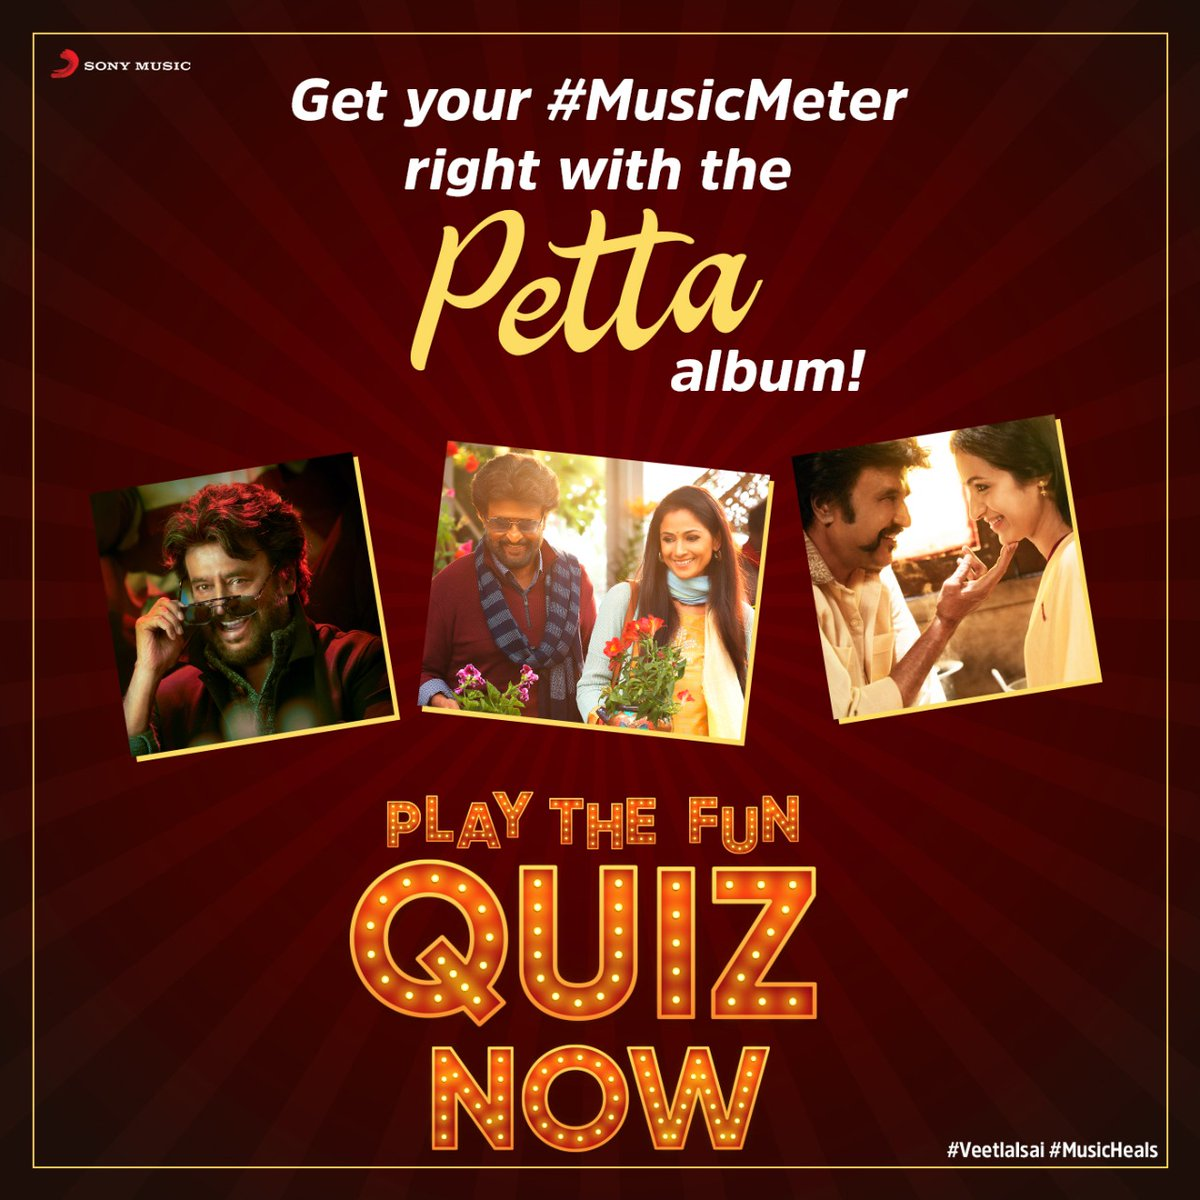 How much do you love the songs of our #SuperStar's #Petta album? 🔥😎  Take up this exciting quiz and share your scores with us in the comments with the hashtag #MusicMeter ➡️ https://t.co/Jmwz8mwY5j  #MusicHeals #VeetlaIsai https://t.co/yhltVFYGWx